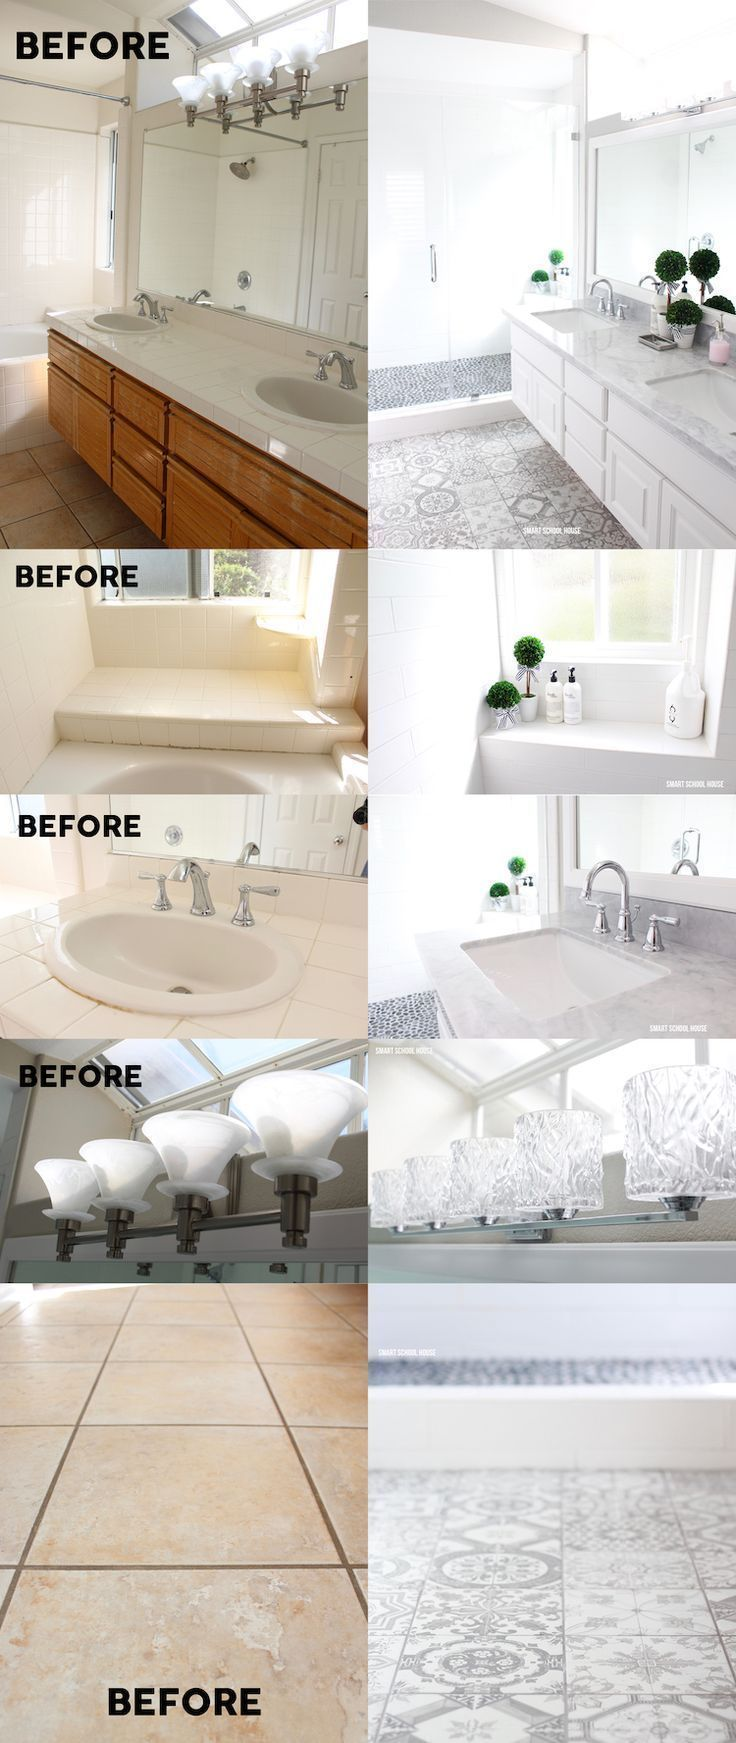 Pure white bathroom scheme everything is white at its finest - Gray And White Bathroom Makeover Gray And White Bathroom Ideas Gorgeous Results With Just Two Colors Gray And White